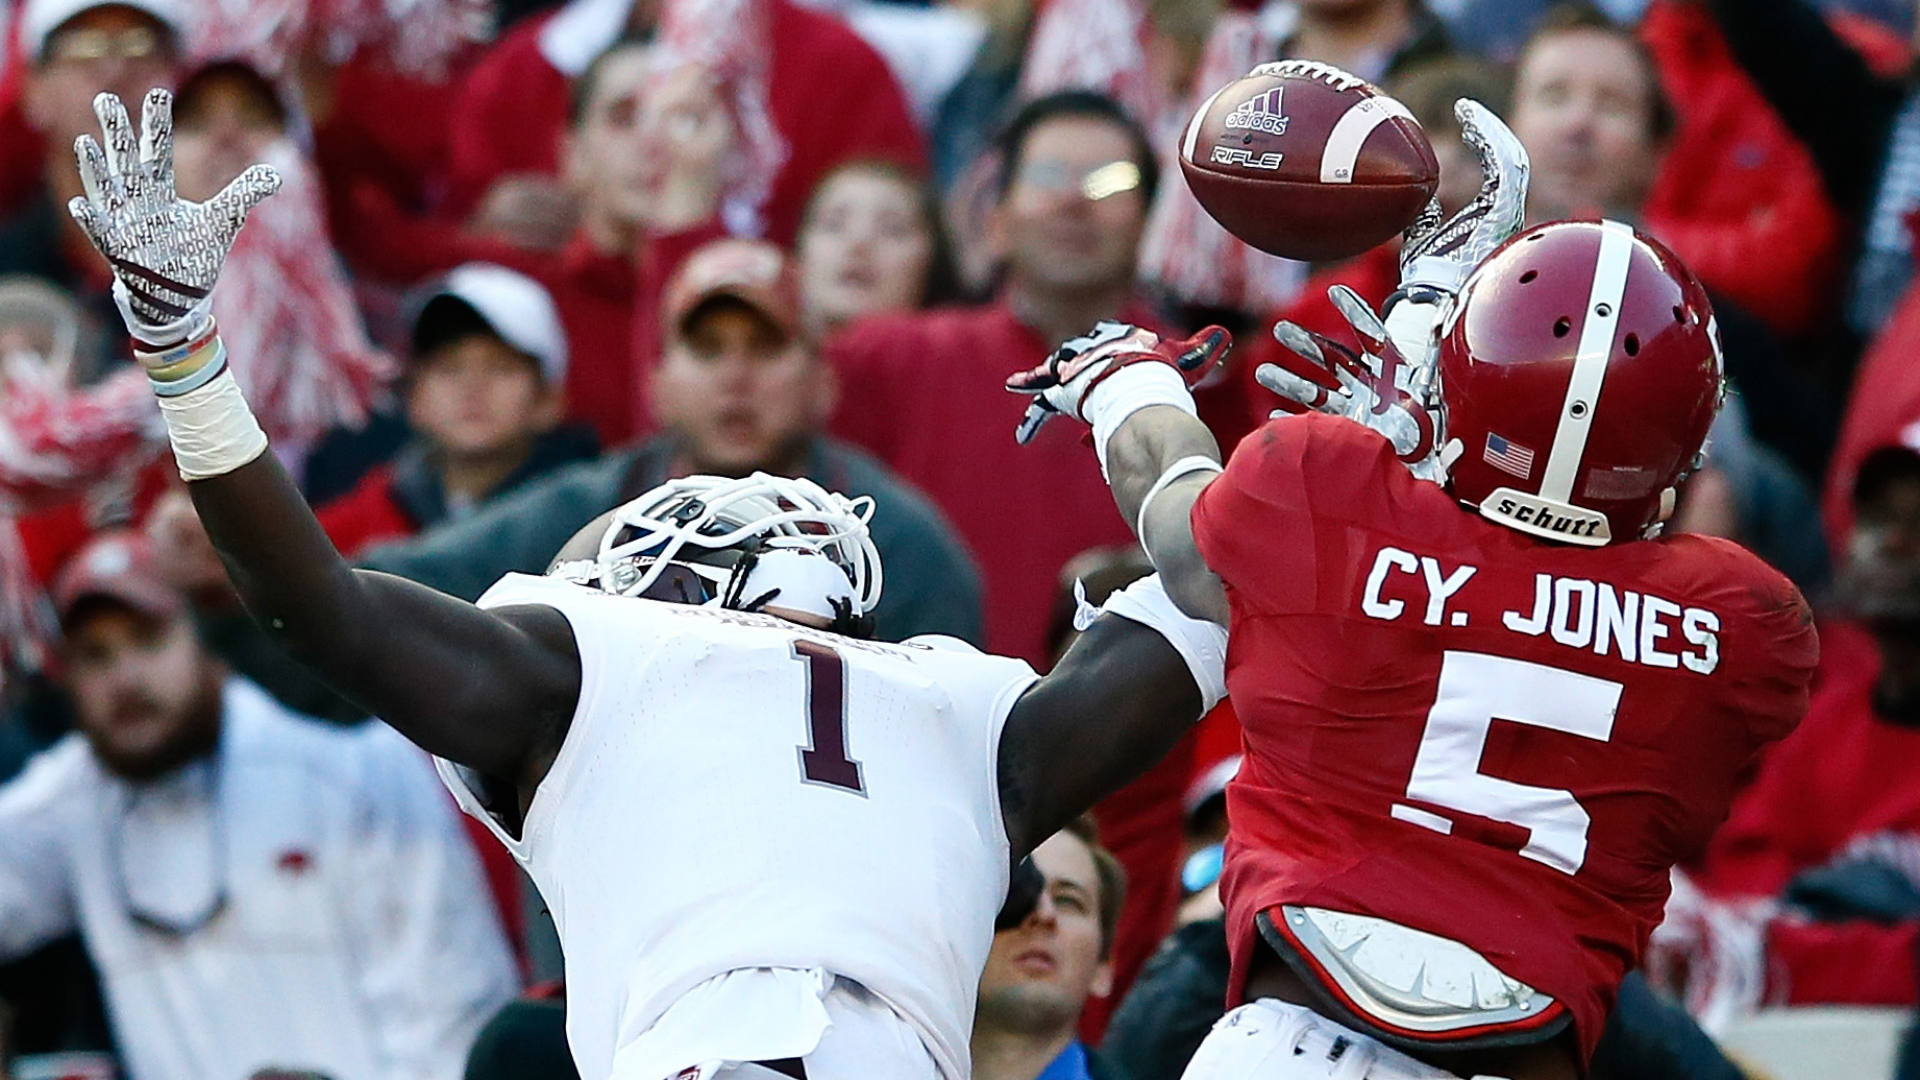 Alabama's Cyrus Jones has charges against him dropped